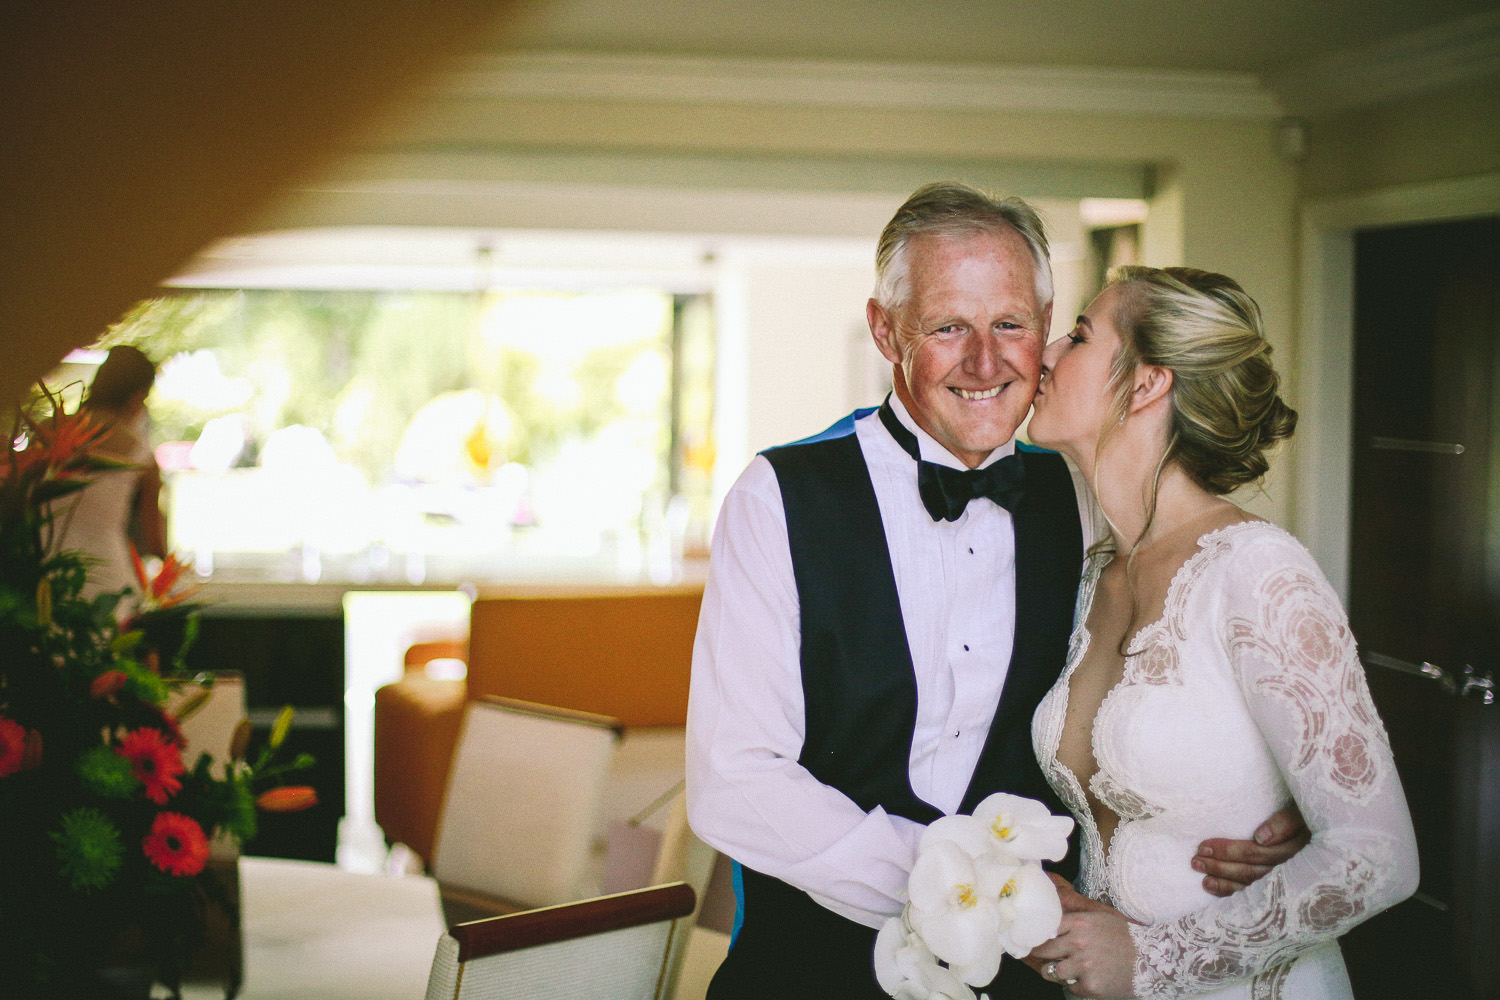 bridal reveal emotional father seeing daughter in Berta wedding gown